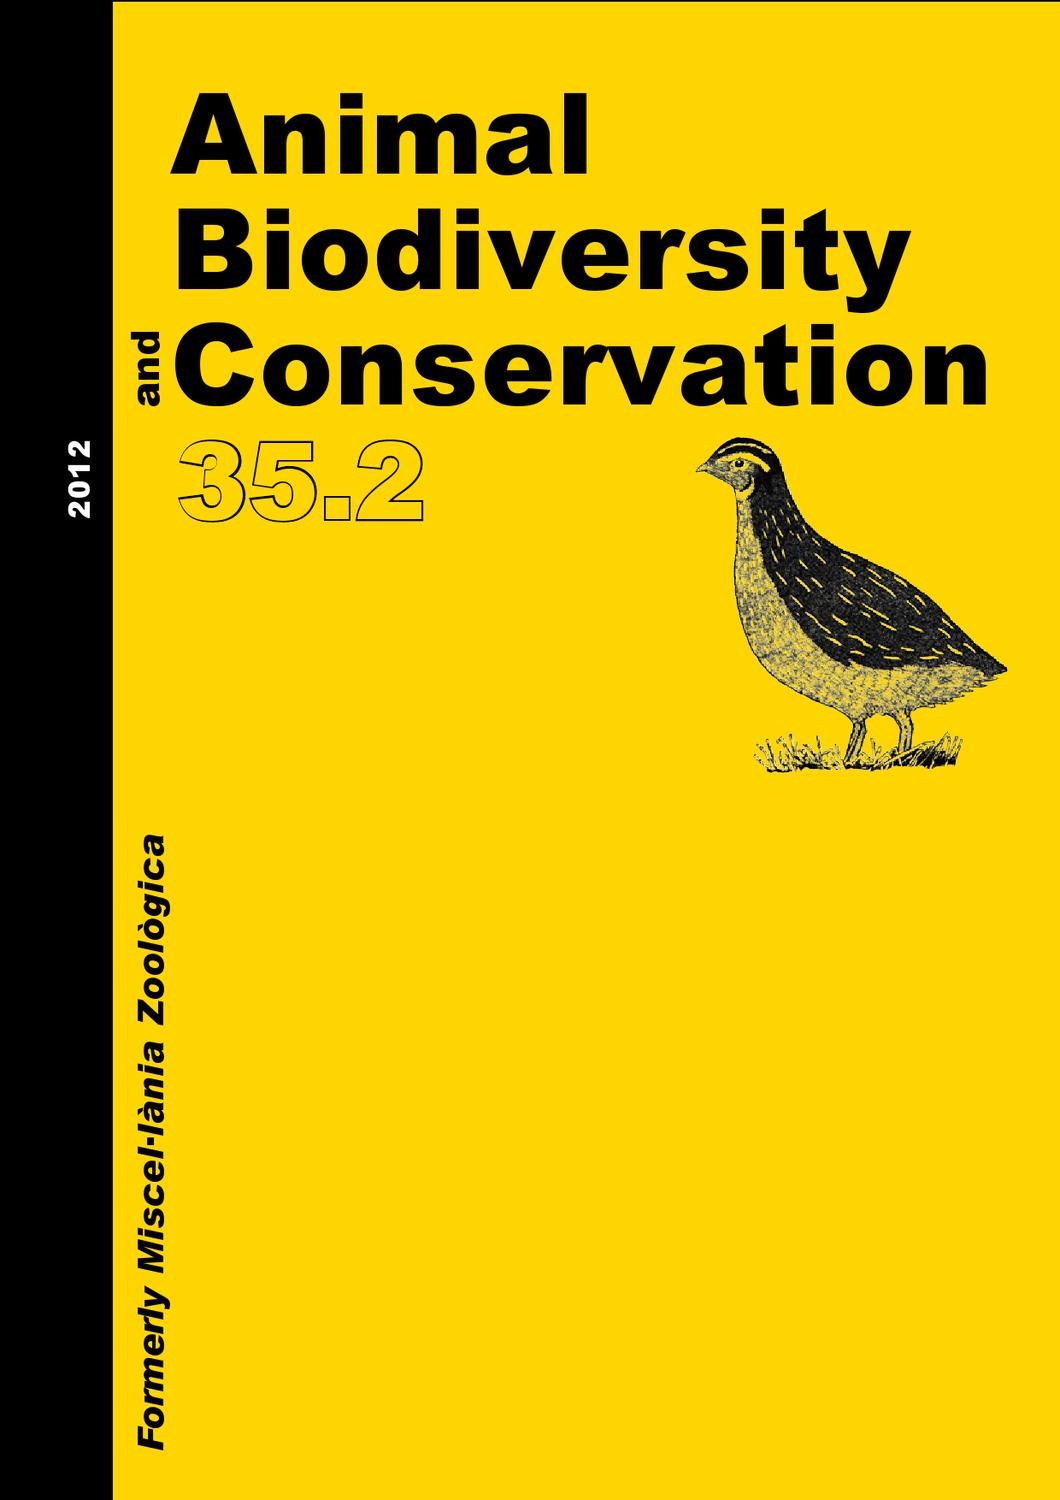 Animal Biodiversity and Conservation issue 35.2 (2012) by